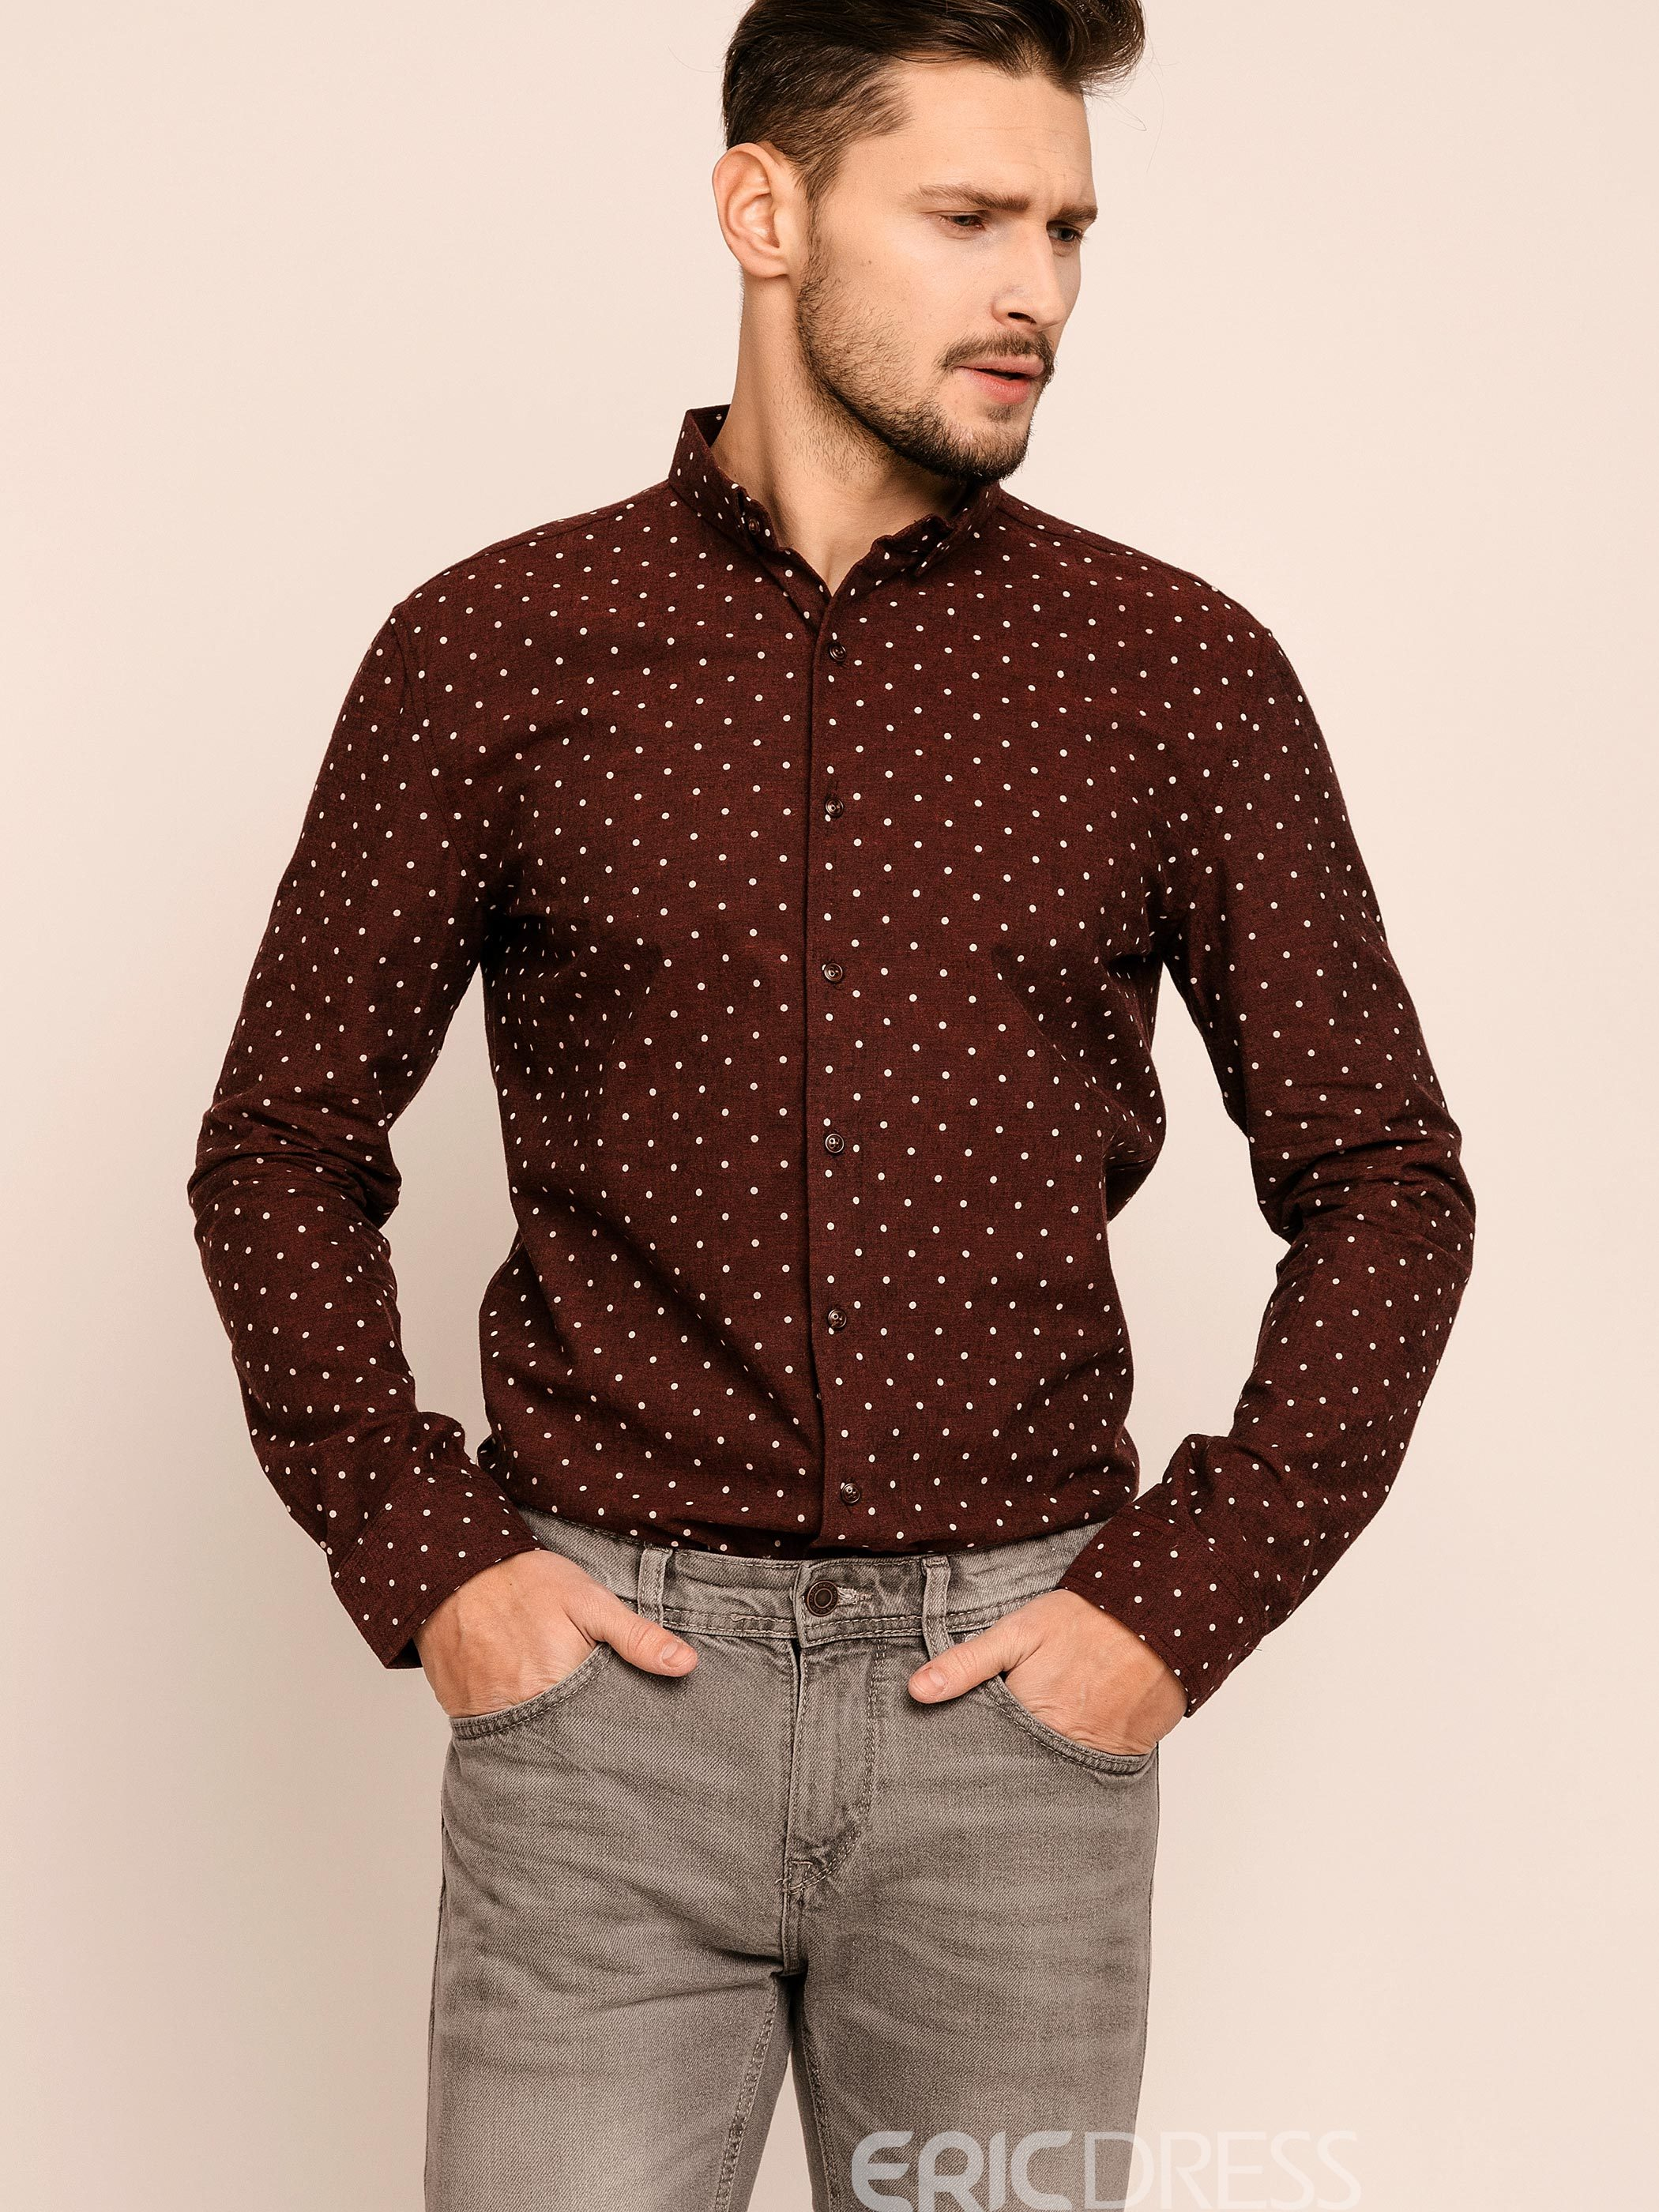 43718fb17f1 Ericdress Lapel Polka Dots Long Sleeve slim Men s Shirt 12746569 ...